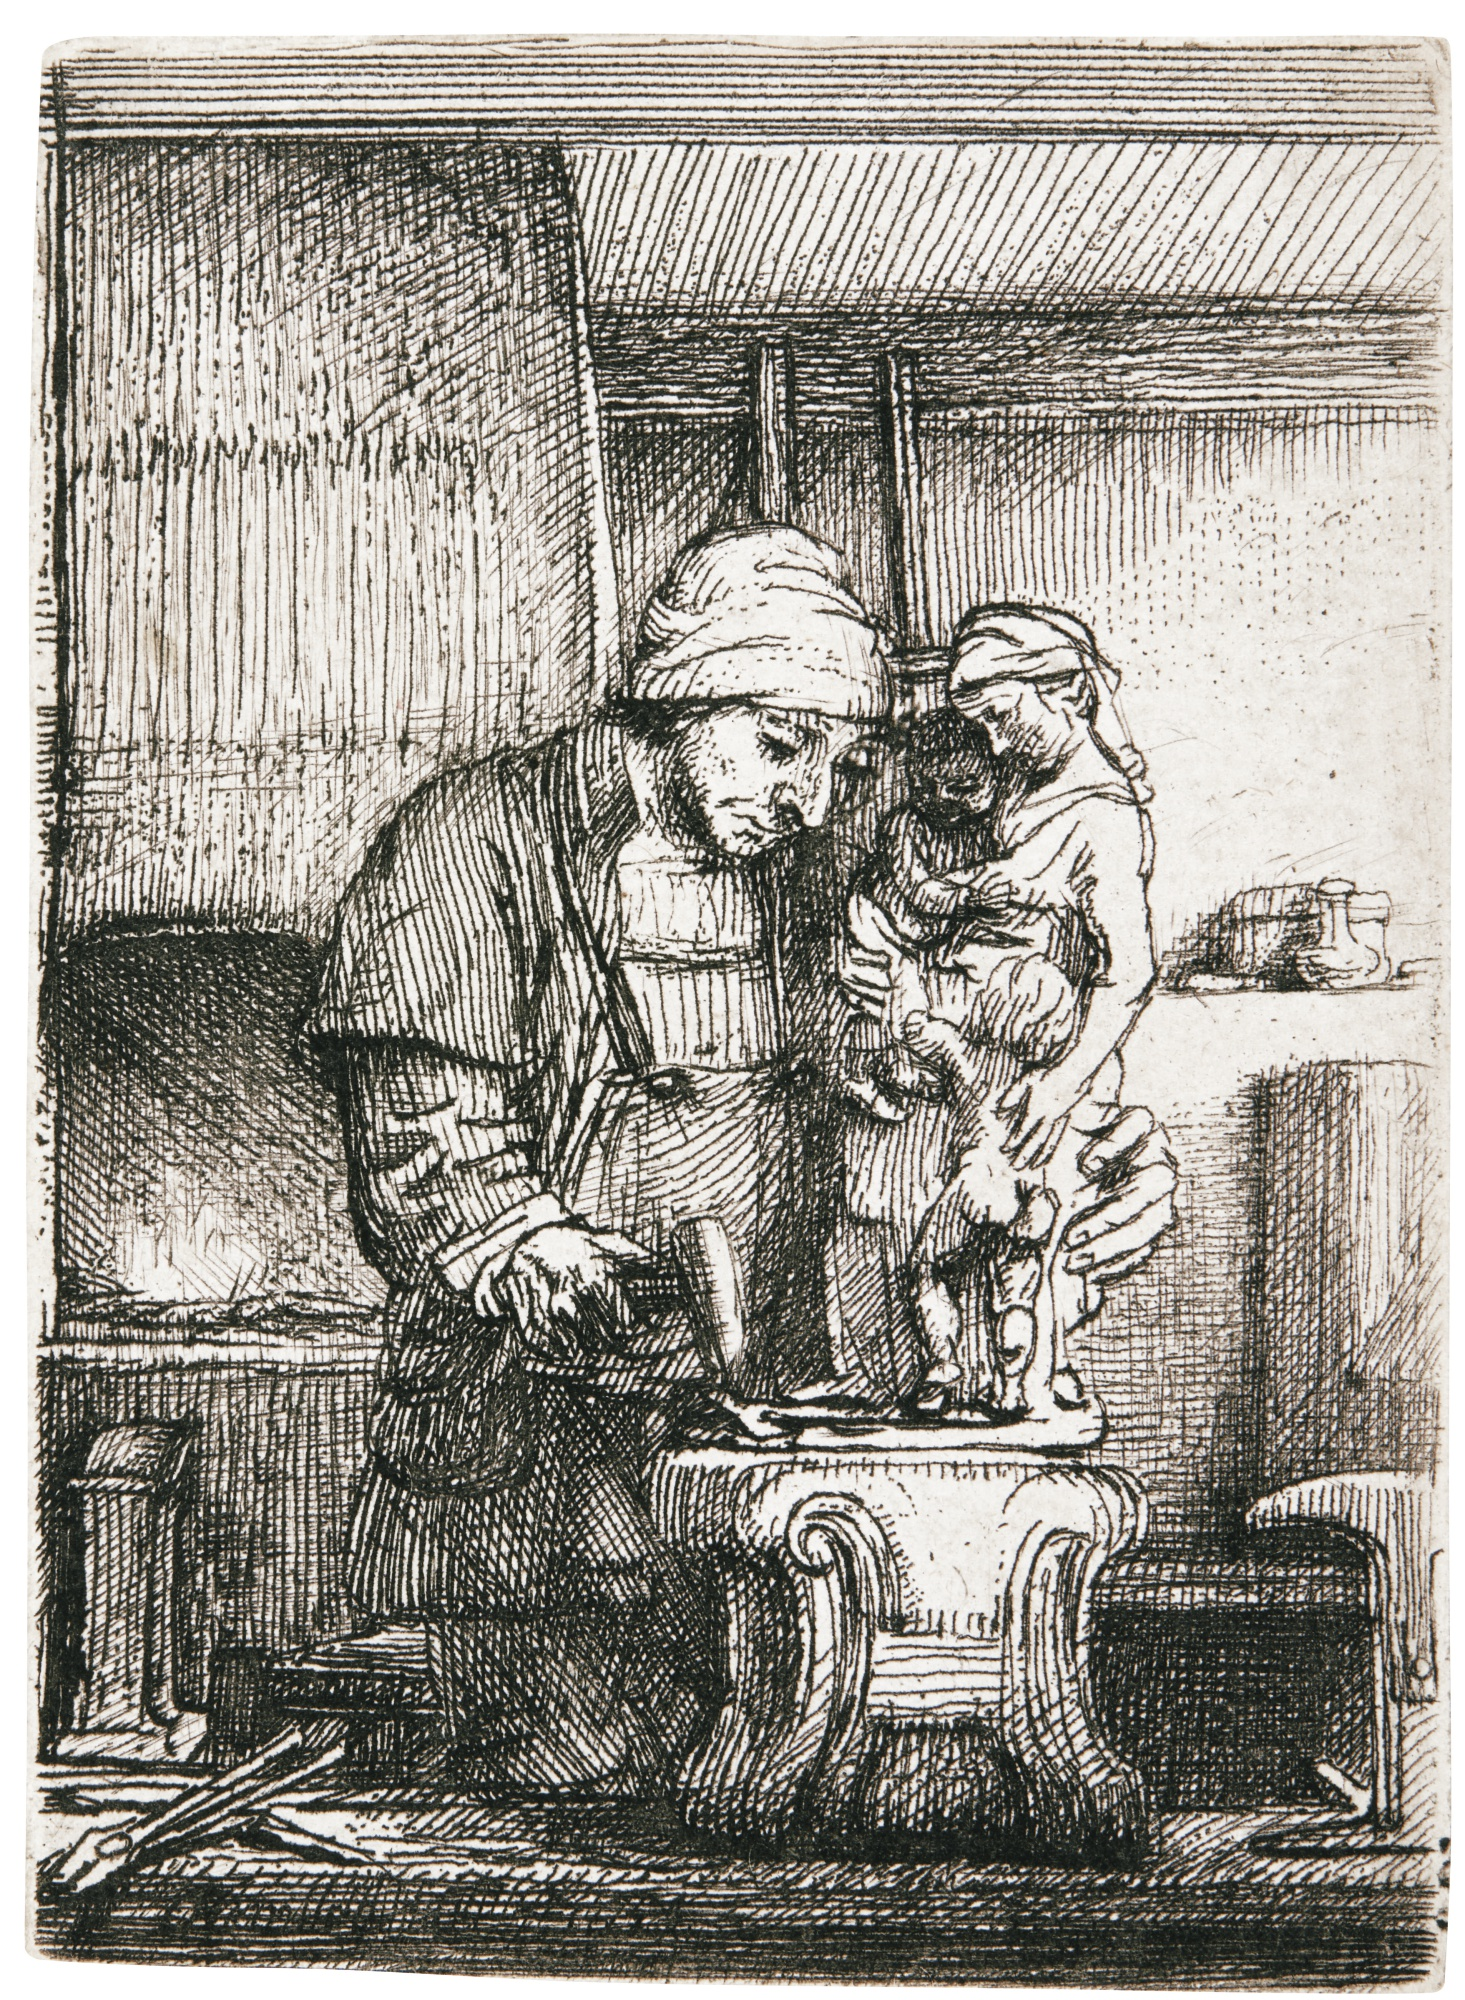 Rembrandt van Rijn-The Goldsmith (B., Holl. 123; New Holl. 289; H. 285)-1655